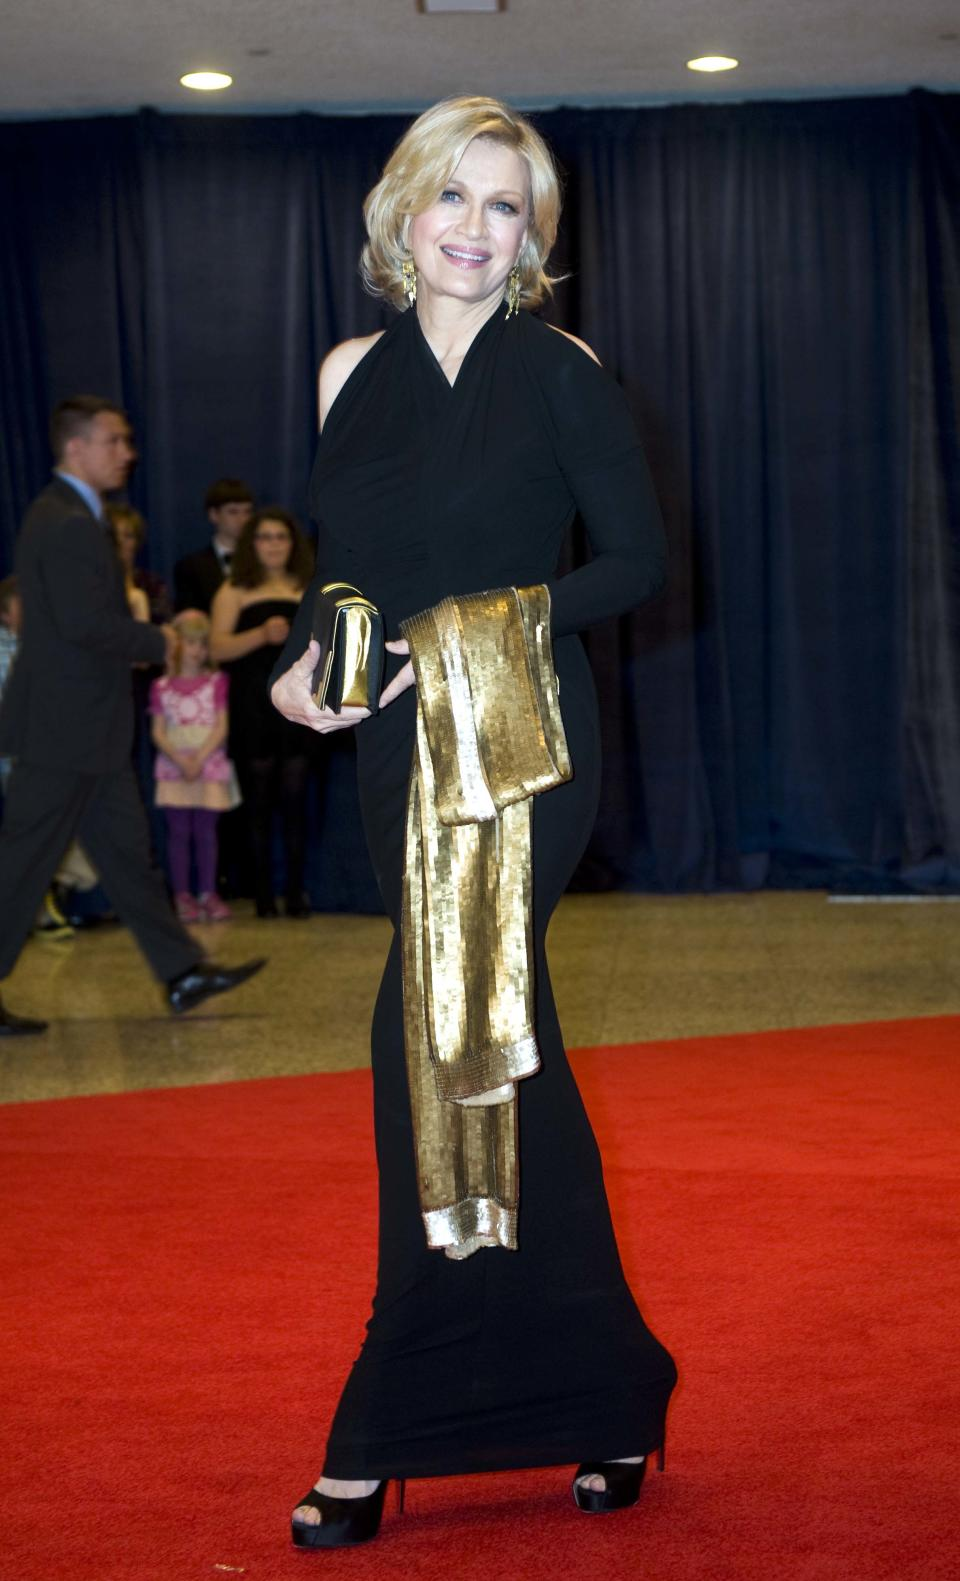 News anchor Diane Sawyer arrives at the White House Correspondents' Association Dinner on Saturday, April 28, 2012, in Washington. (AP Photo/Kevin Wolf)